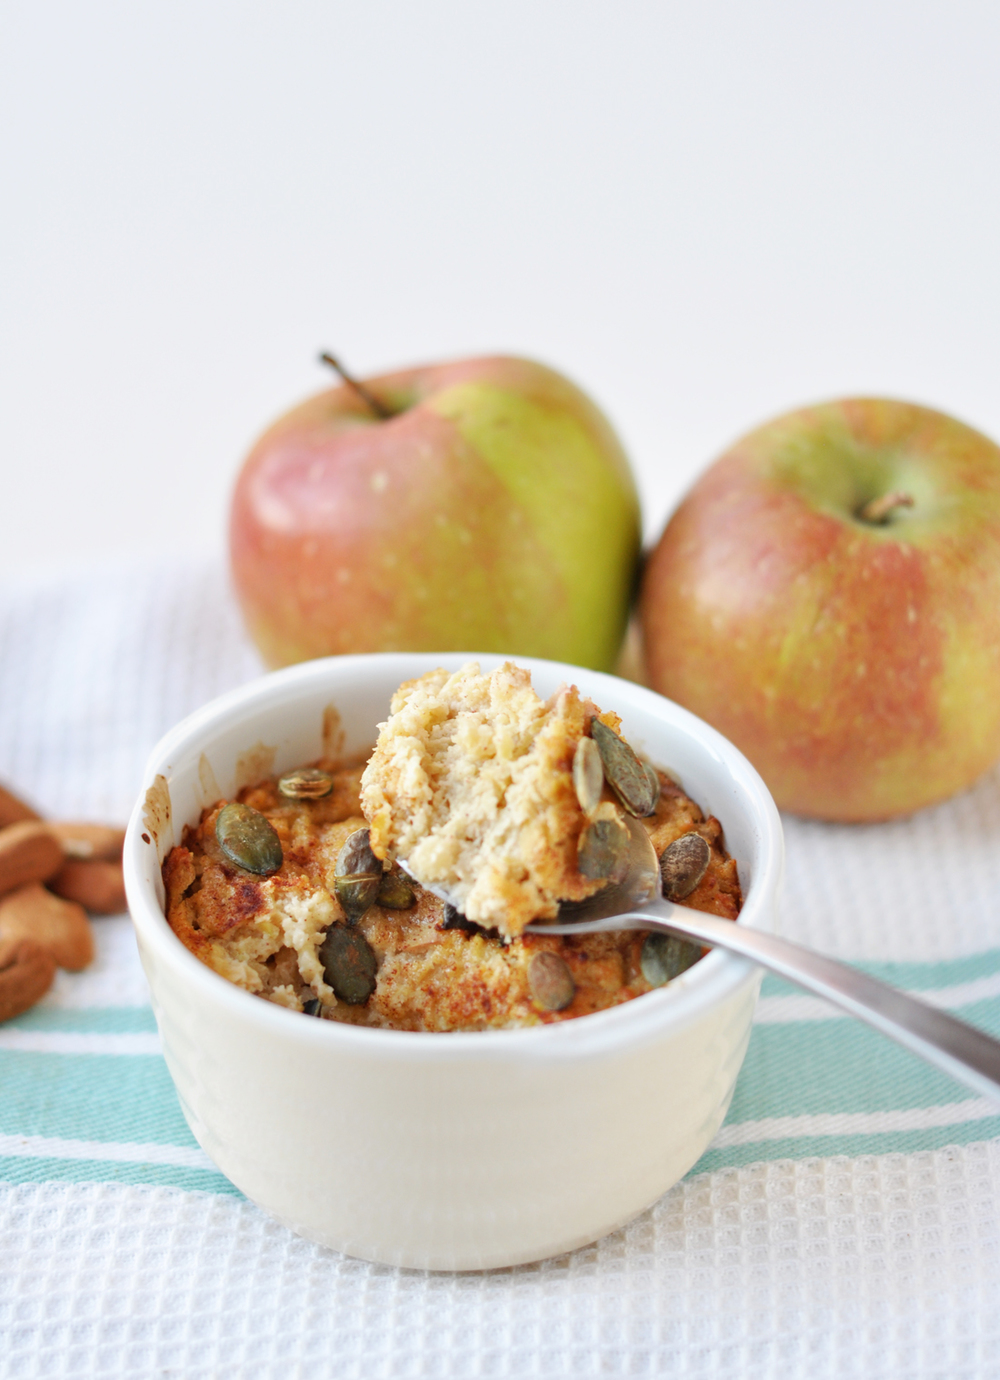 apple cashew pud 3a.jpg